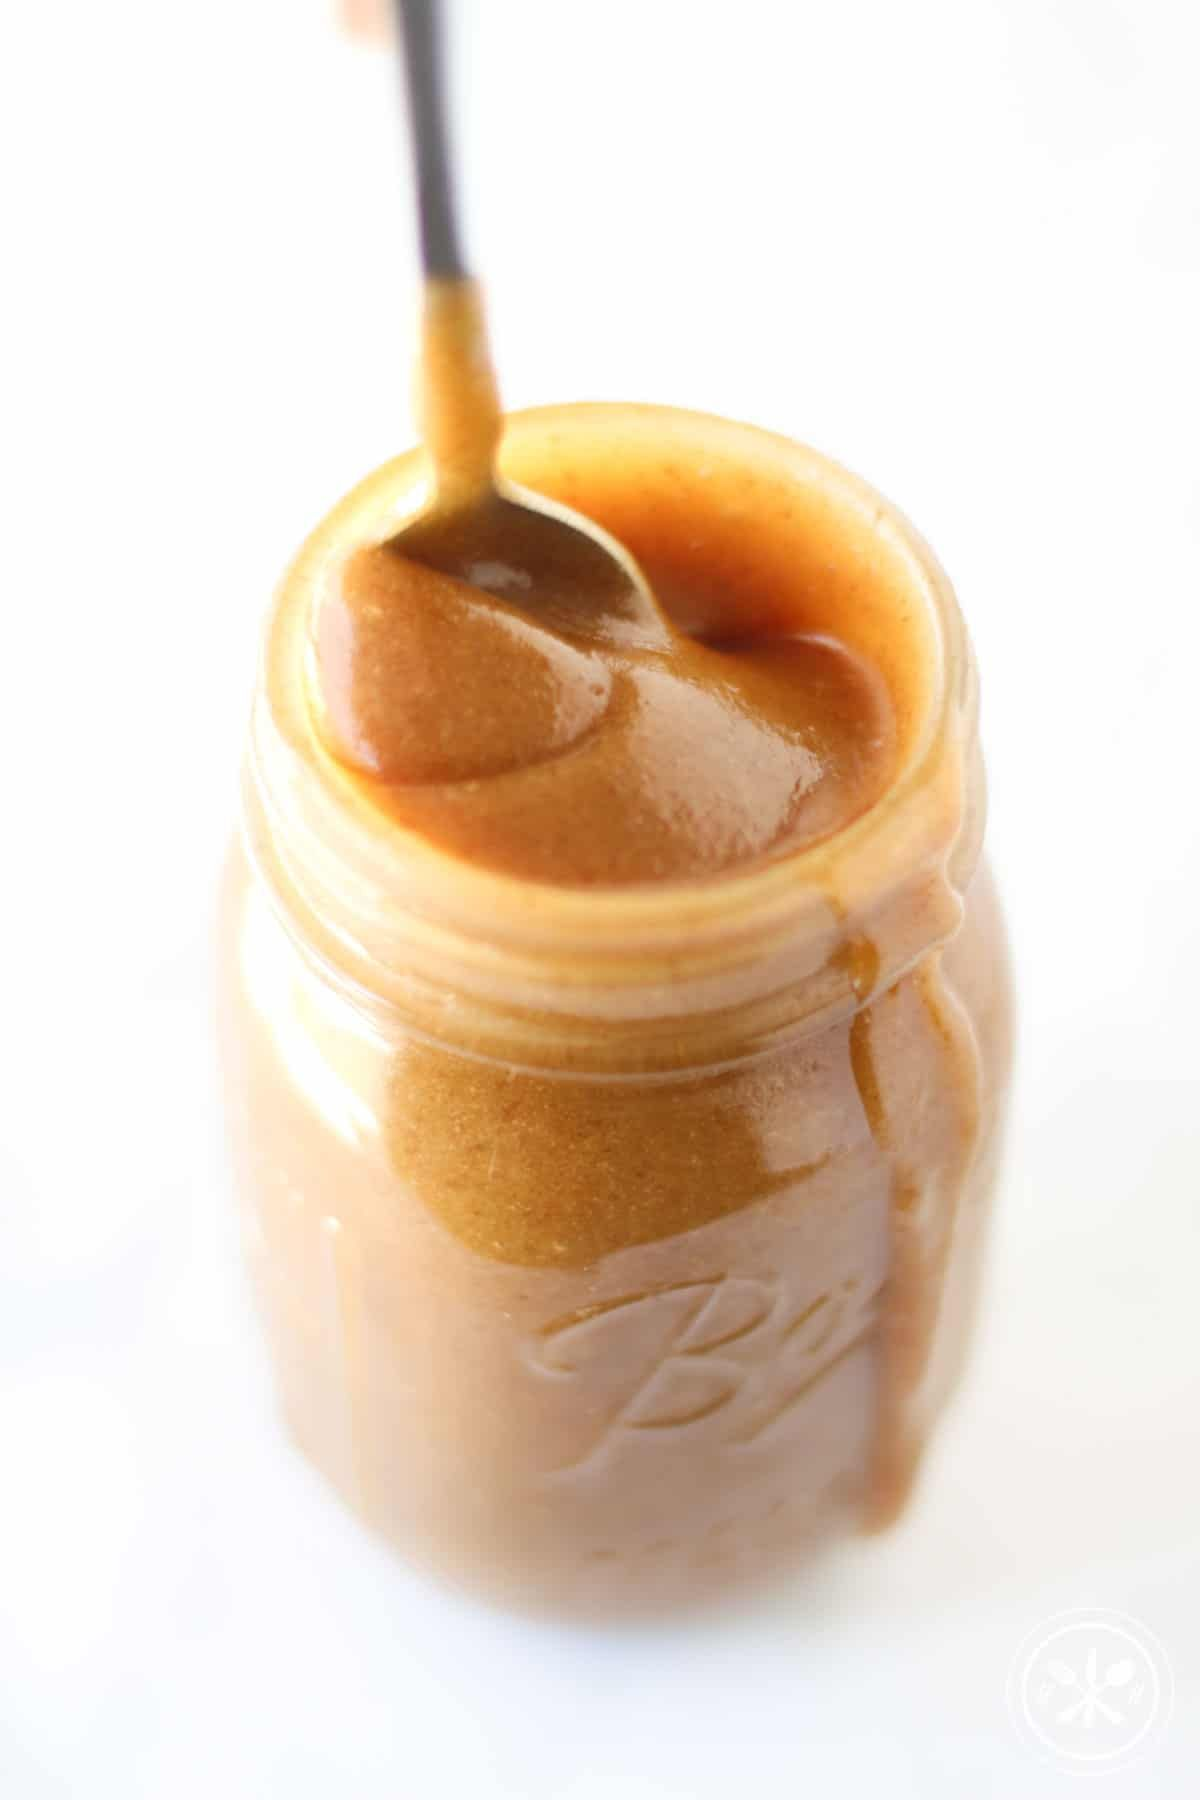 Date Caramel Sauce Is Made With Only Three All Natural